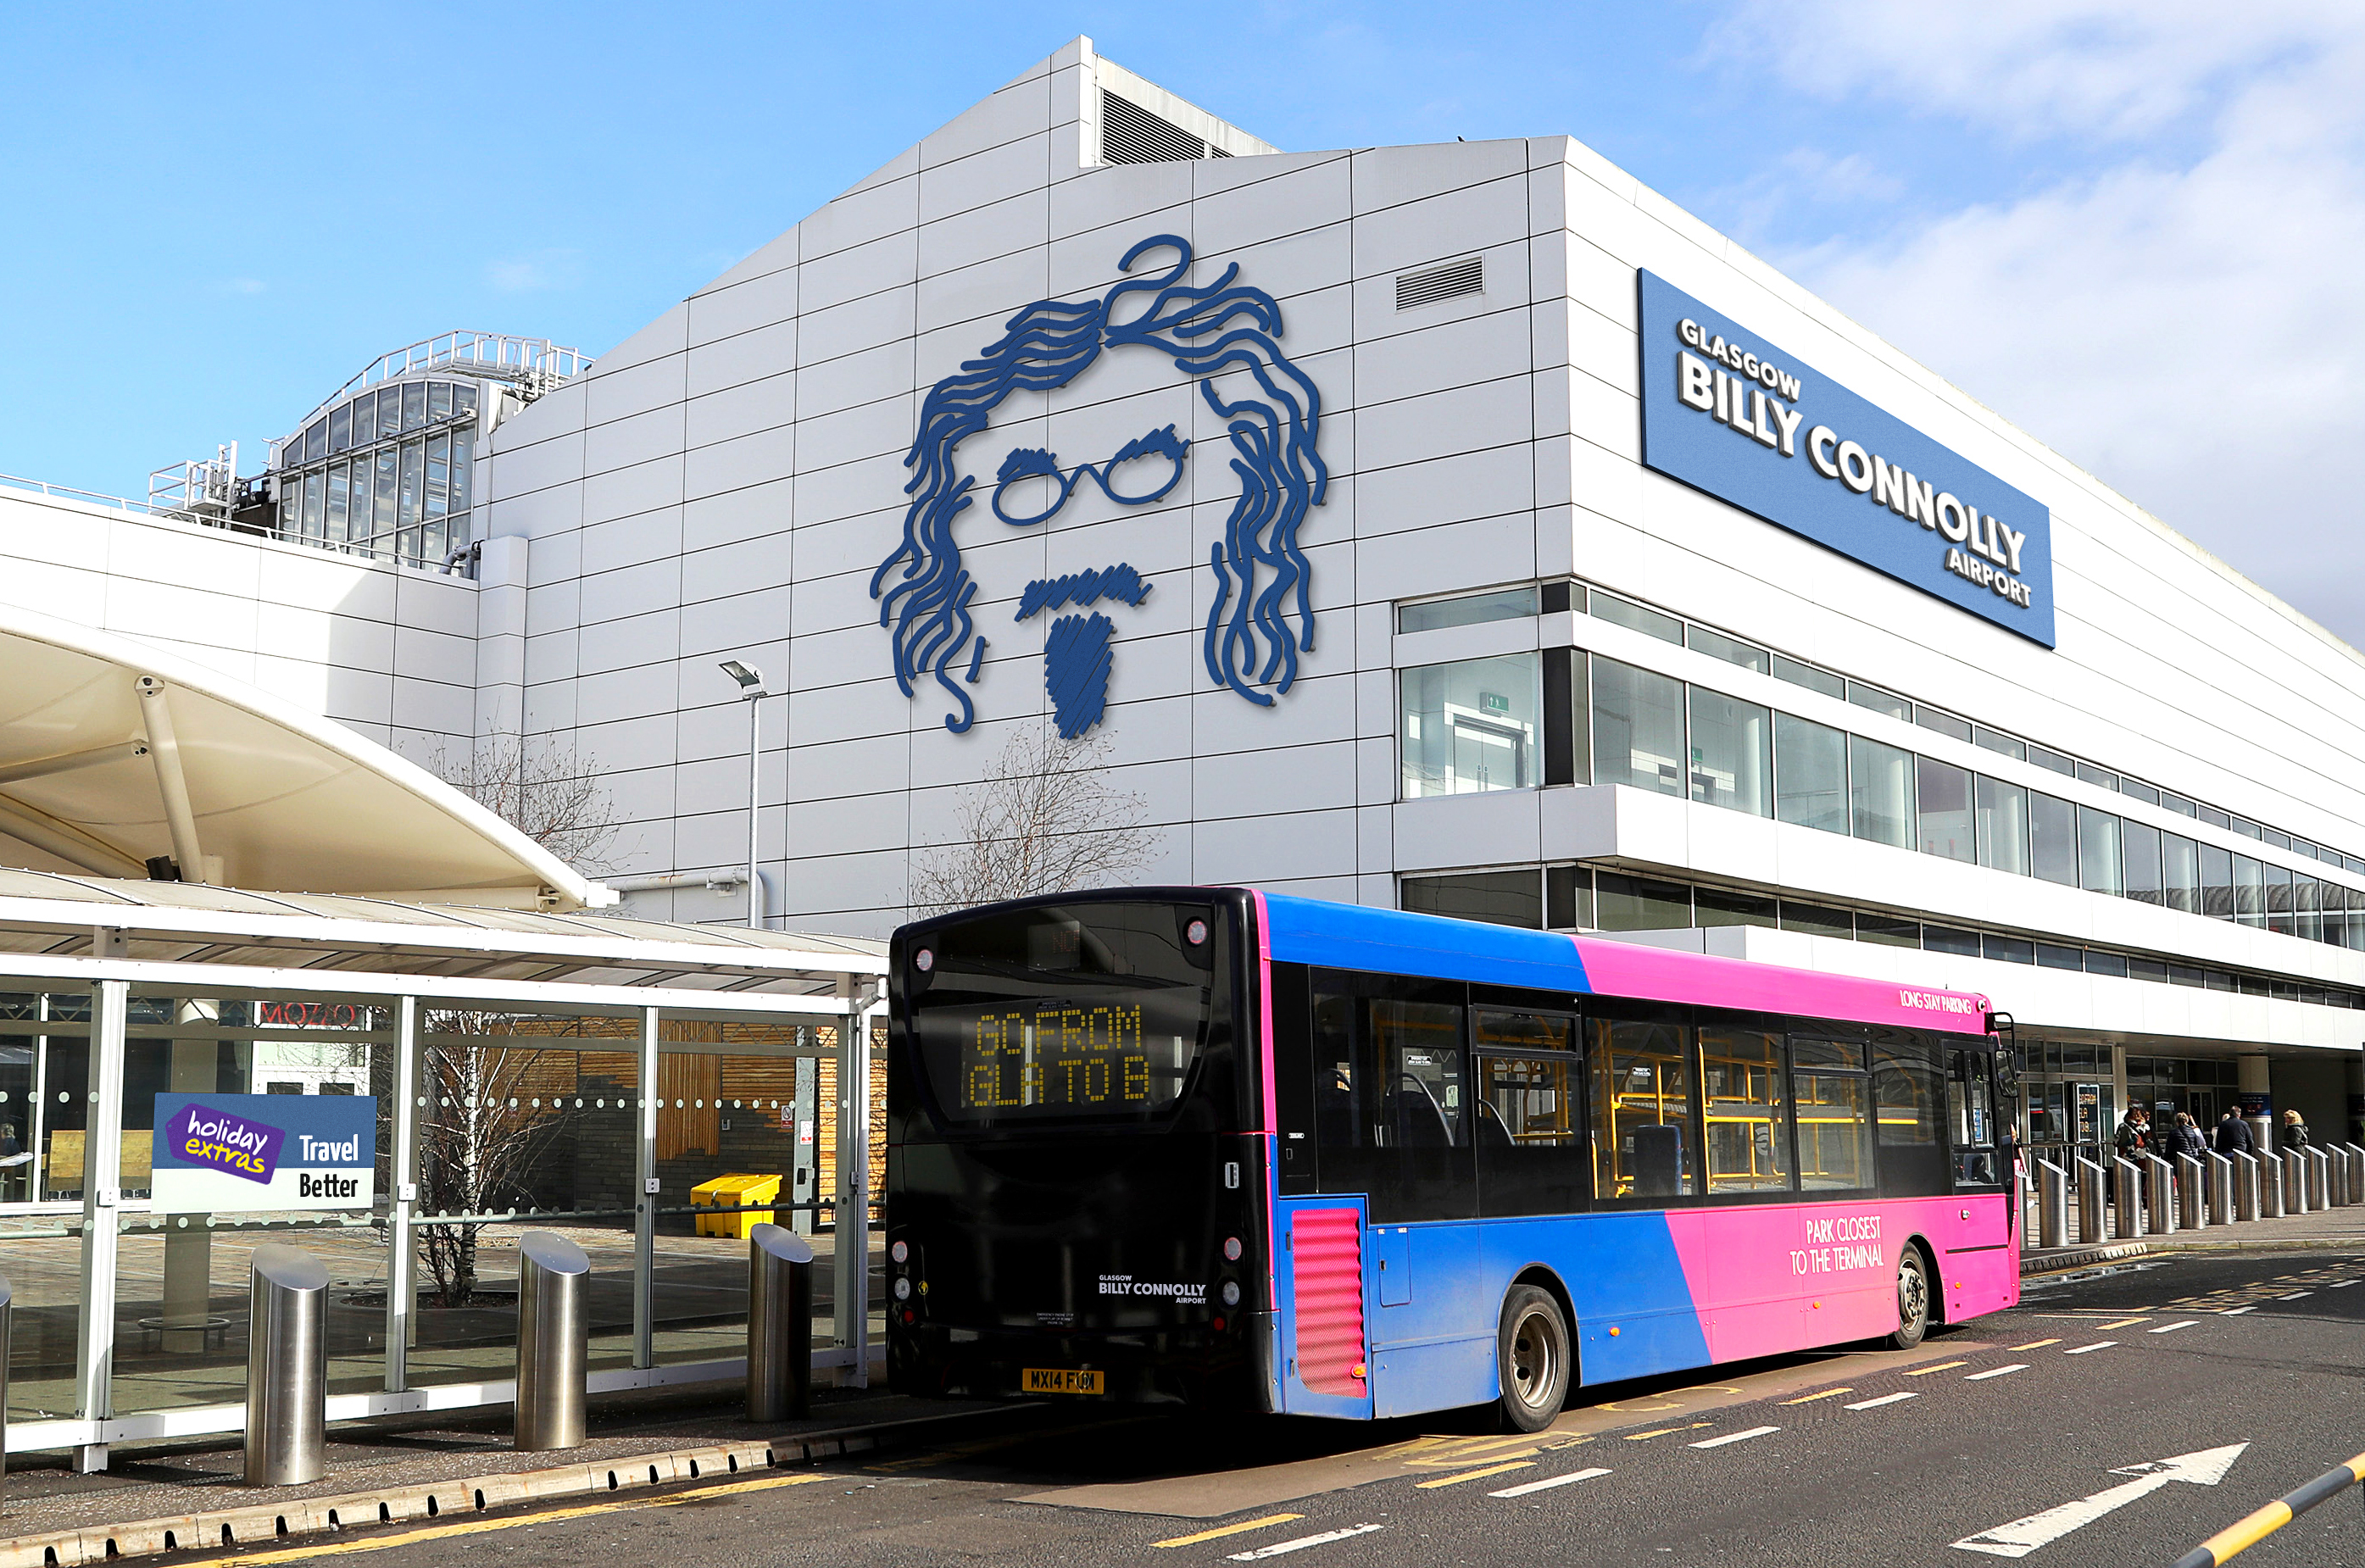 Glasgow Airport Billy Connolly mock-up (Professional Images/@ProfImages)